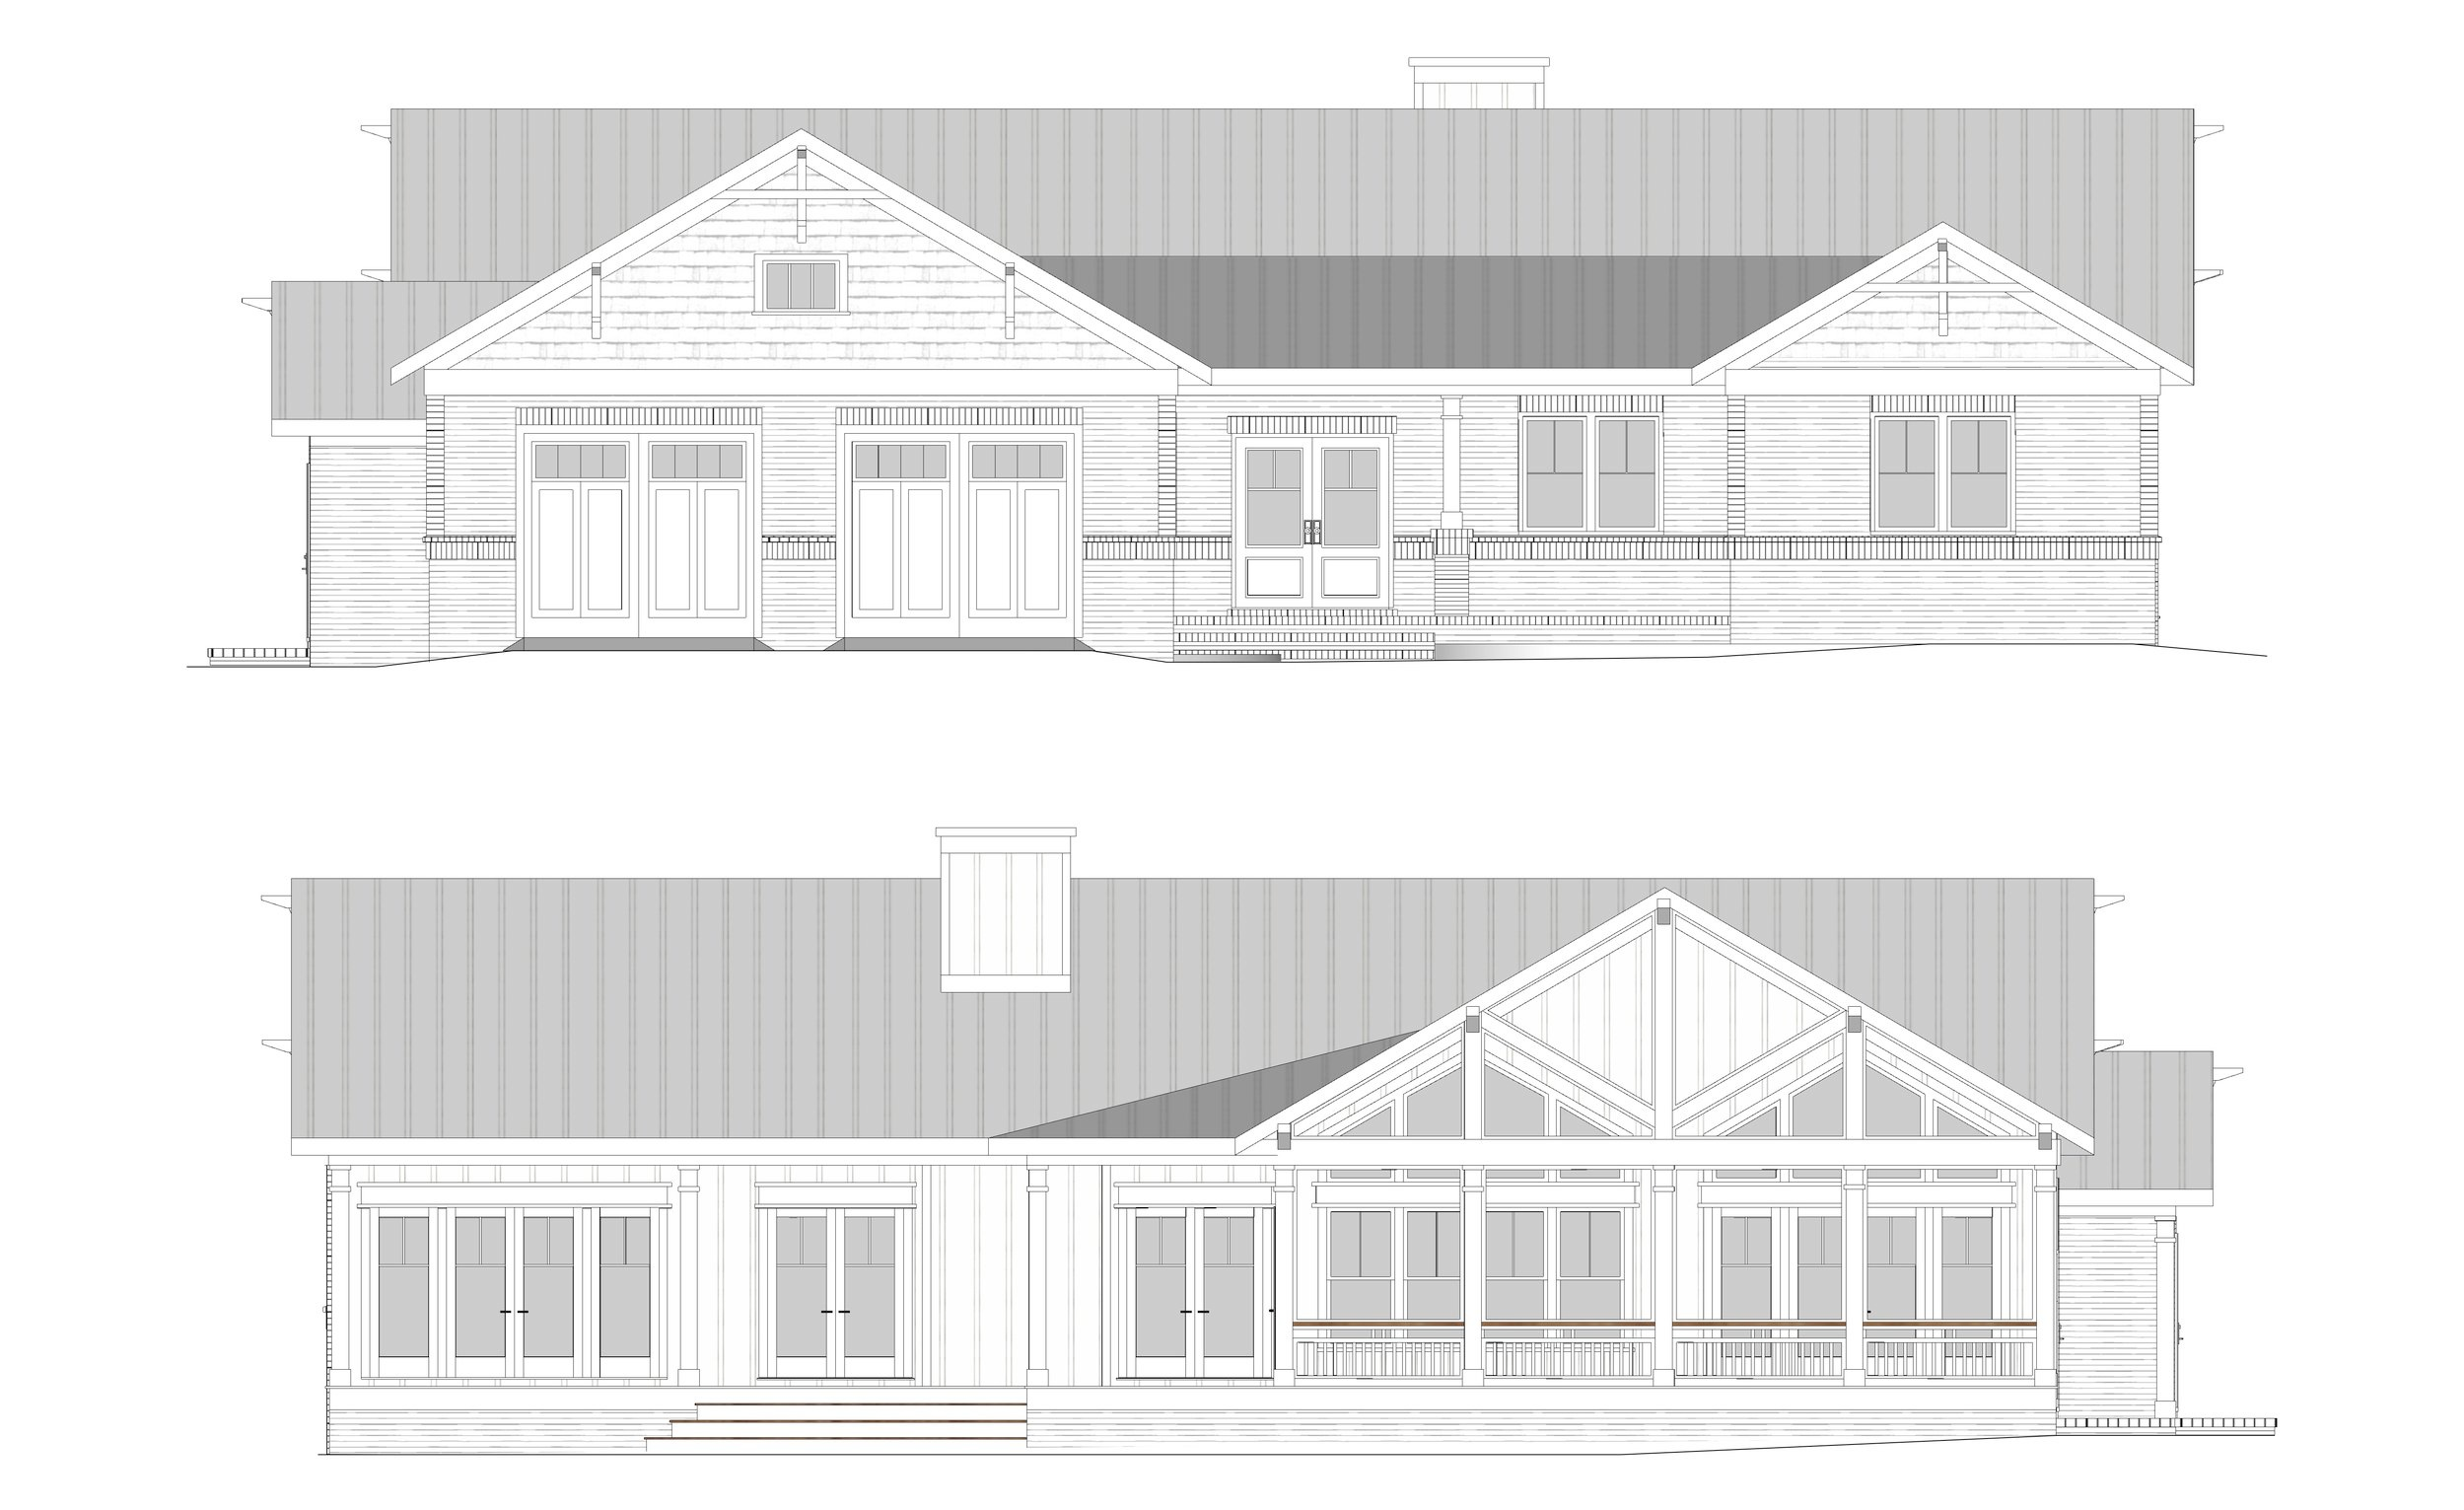 Top to Bottom : Front Elevation, Rear Elevation